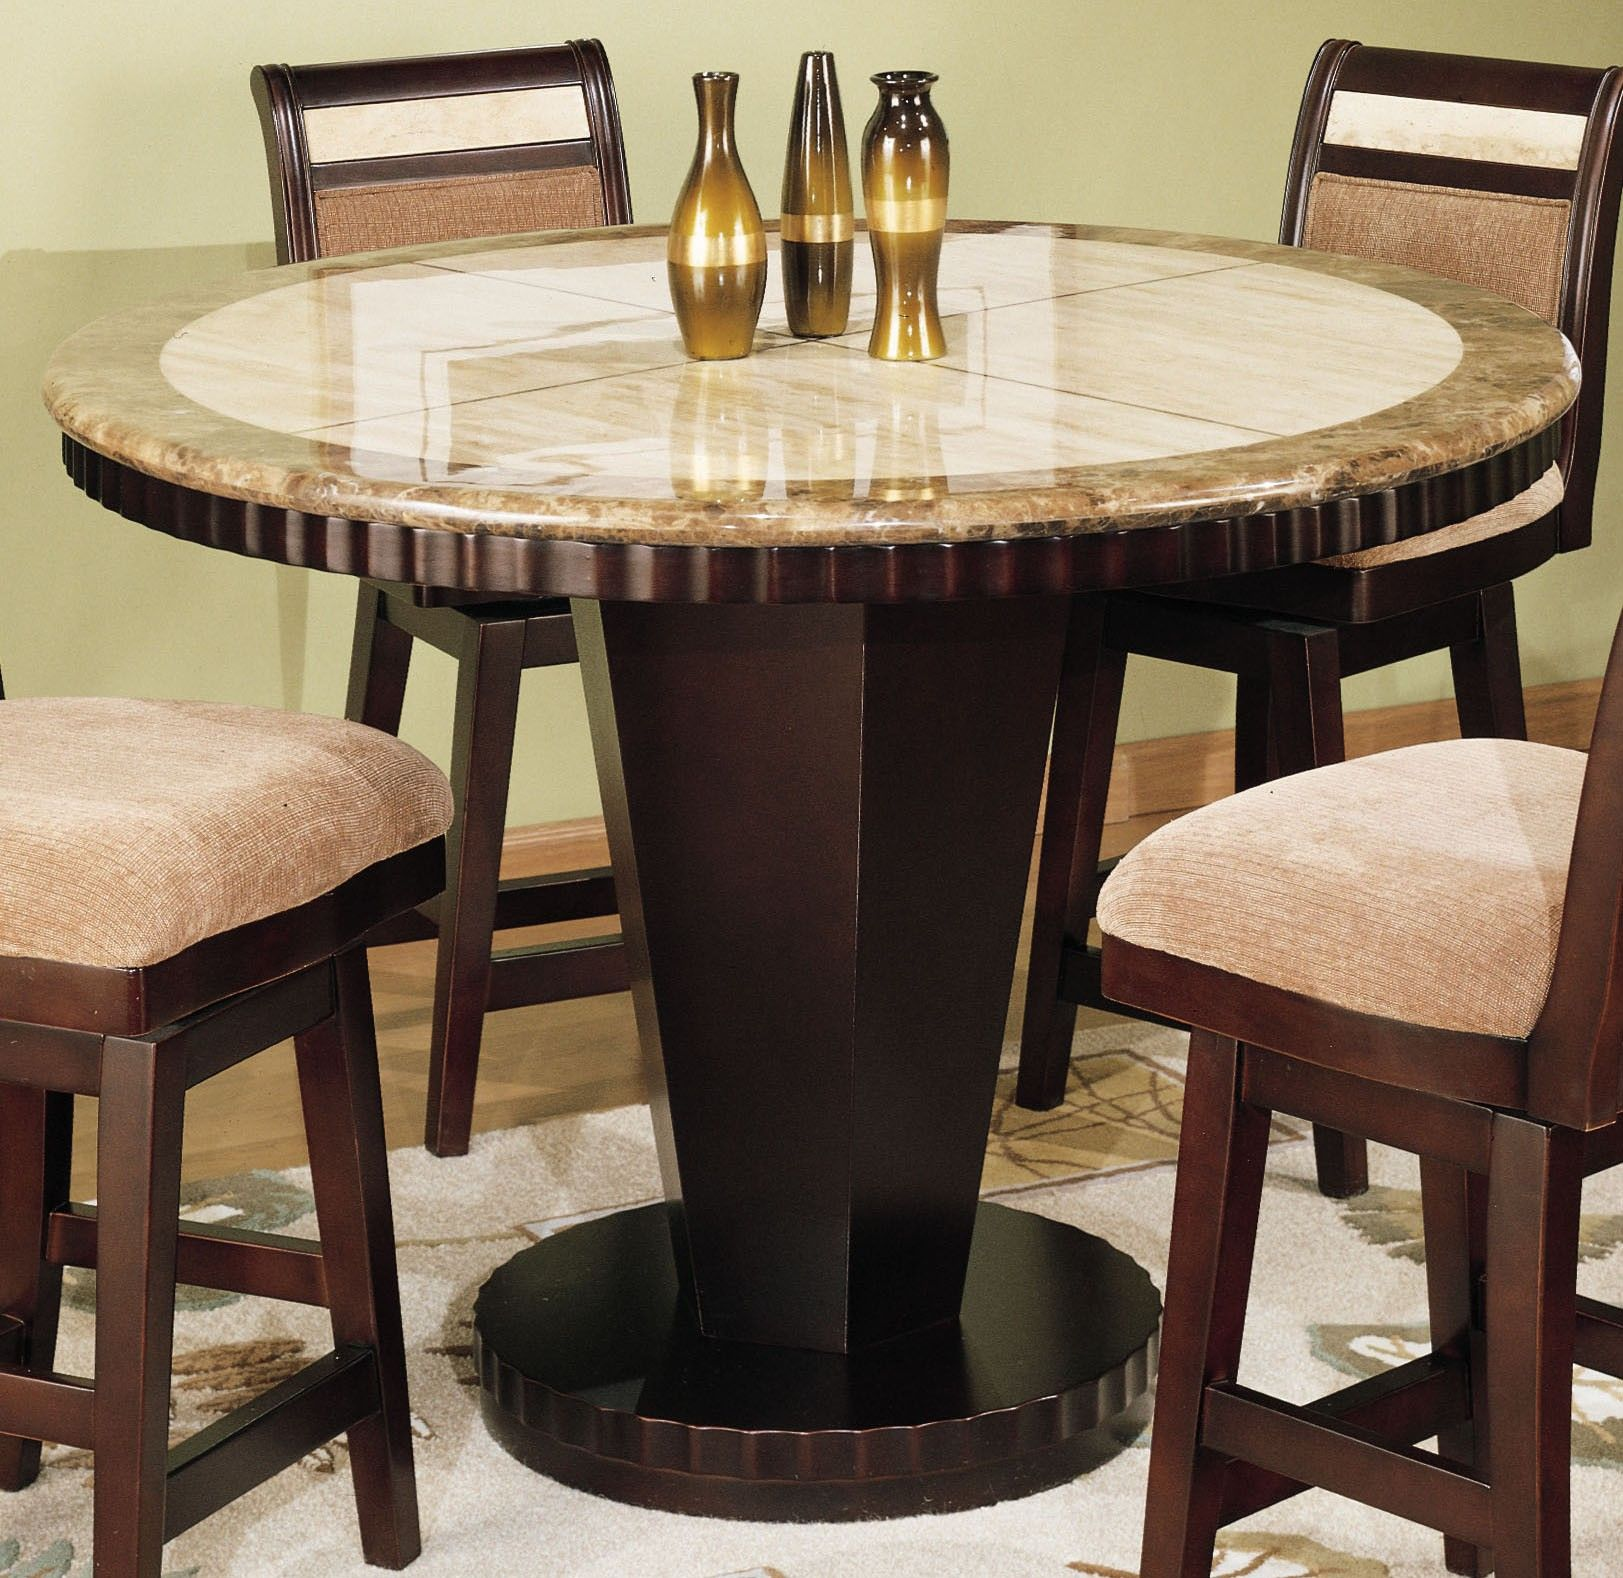 Kitchen Table Granite: Picture Of Armen Living Corallo Counter-Height Round